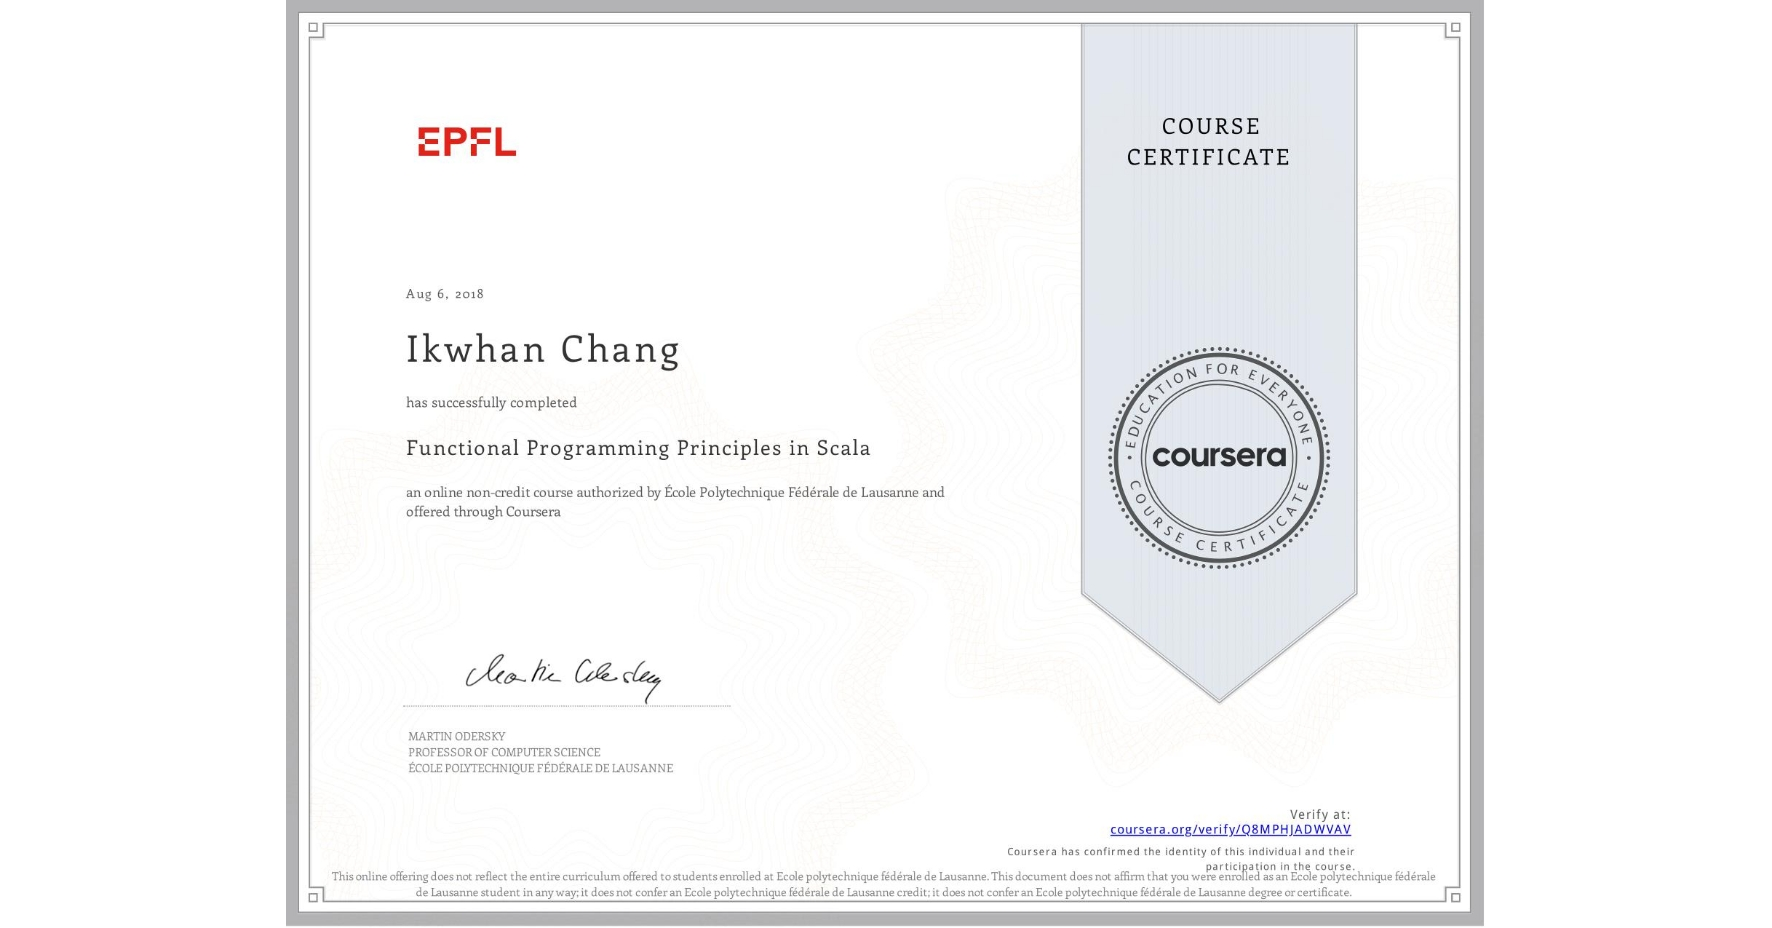 View certificate for Ikwhan Chang, Functional Programming Principles in Scala, an online non-credit course authorized by École Polytechnique Fédérale de Lausanne and offered through Coursera